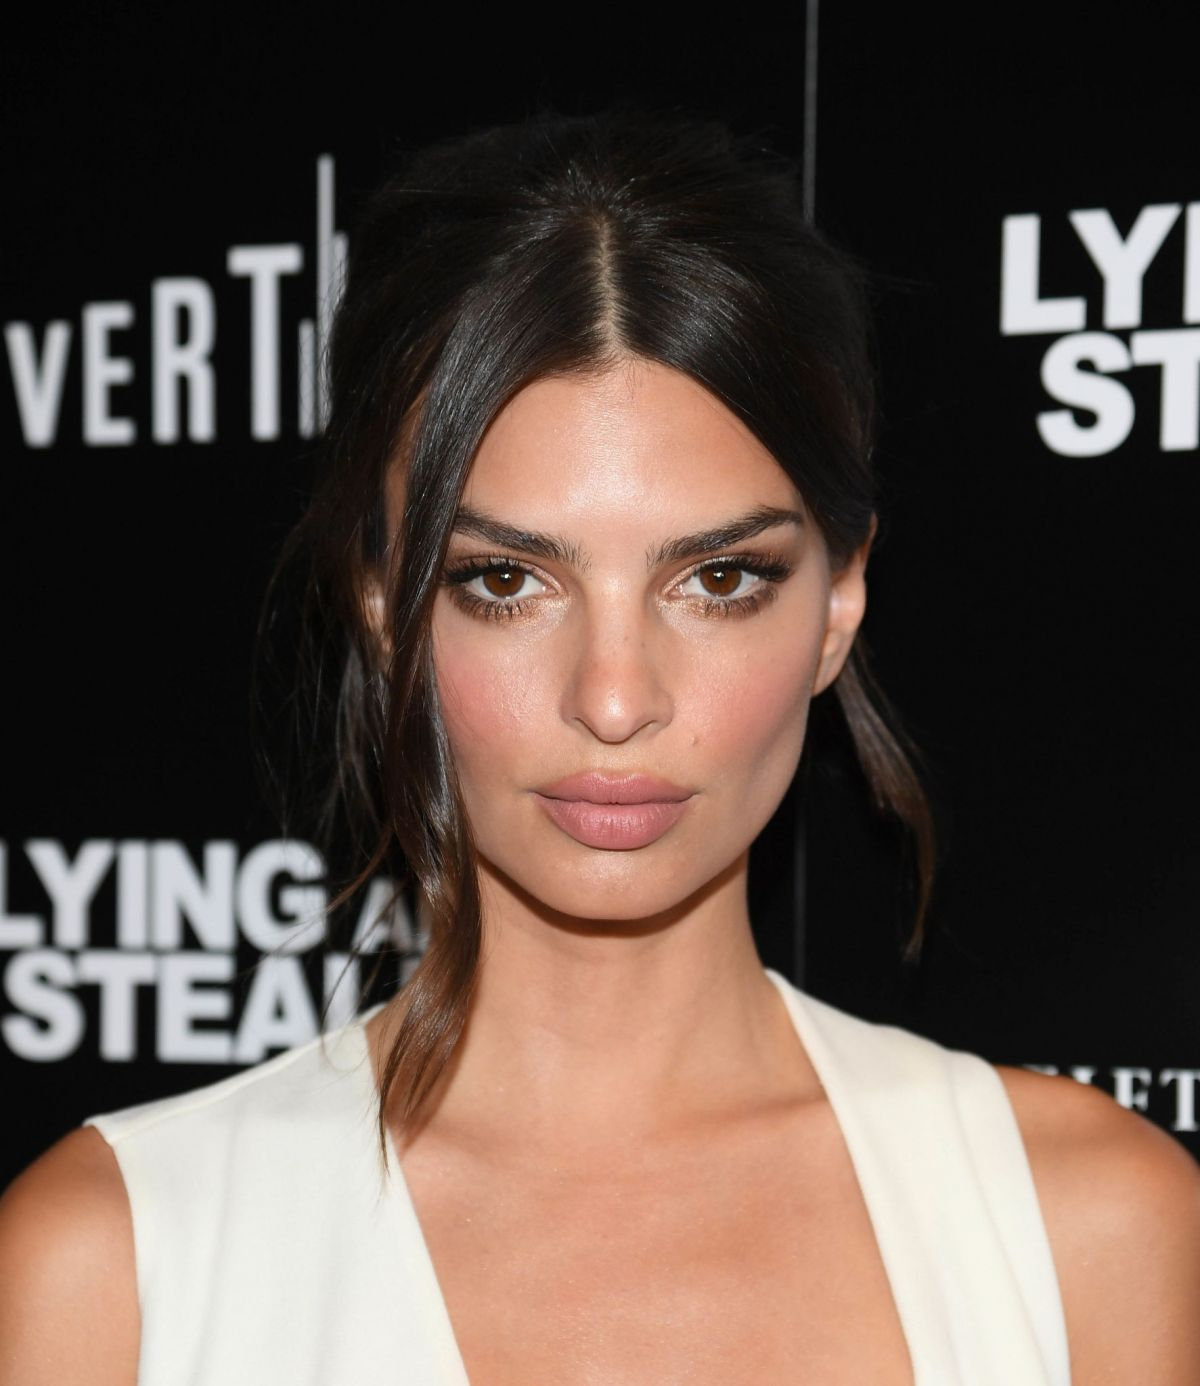 Emily Ratajkowski At Lying And Stealing Screening In New